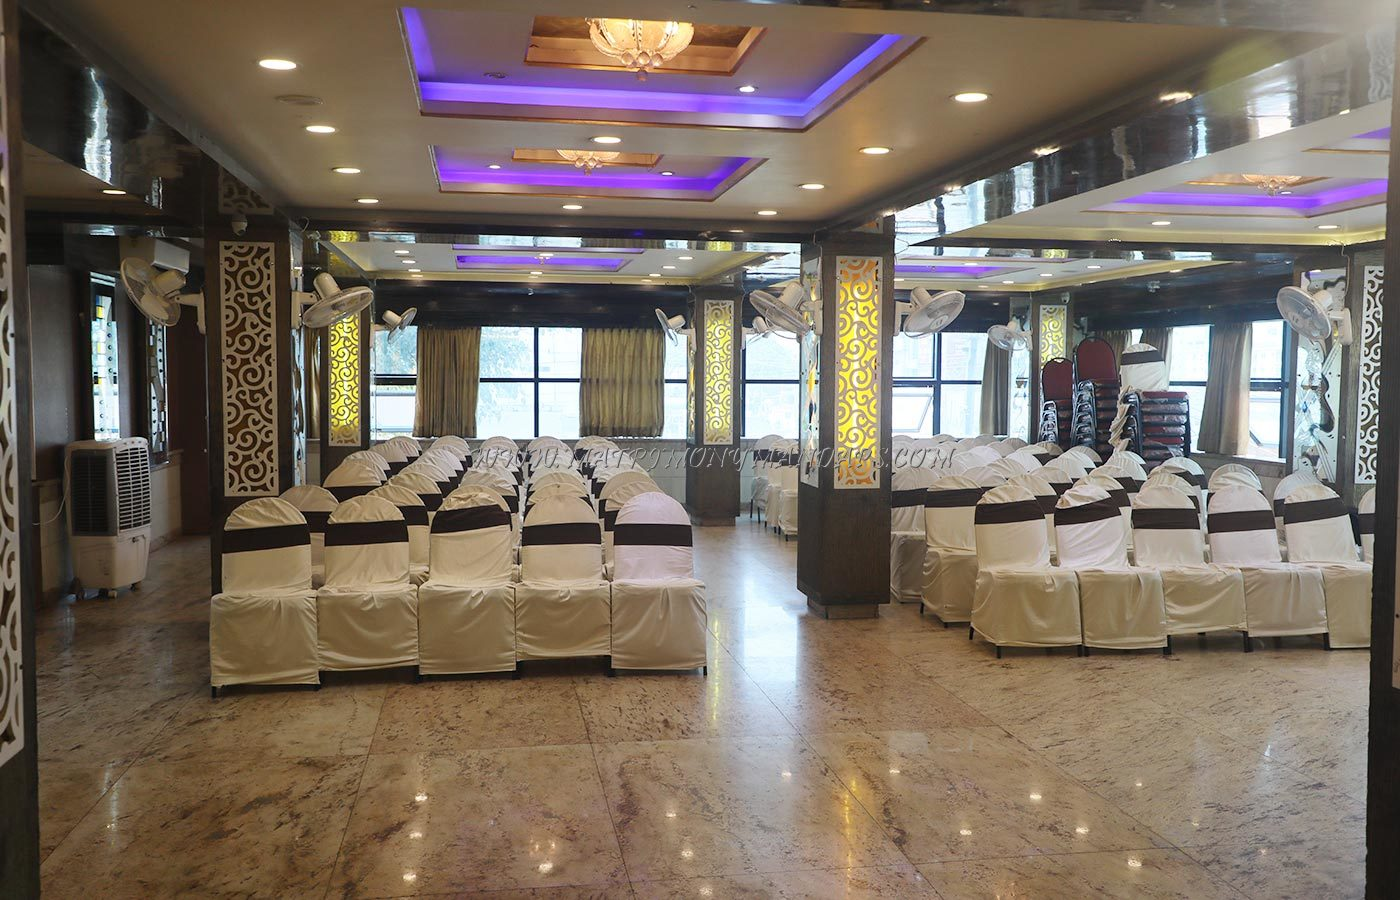 Find the availability of the New Krishnasagar Party Hall (A/C) in Ramamurthy Nagar, Bangalore and avail special offers